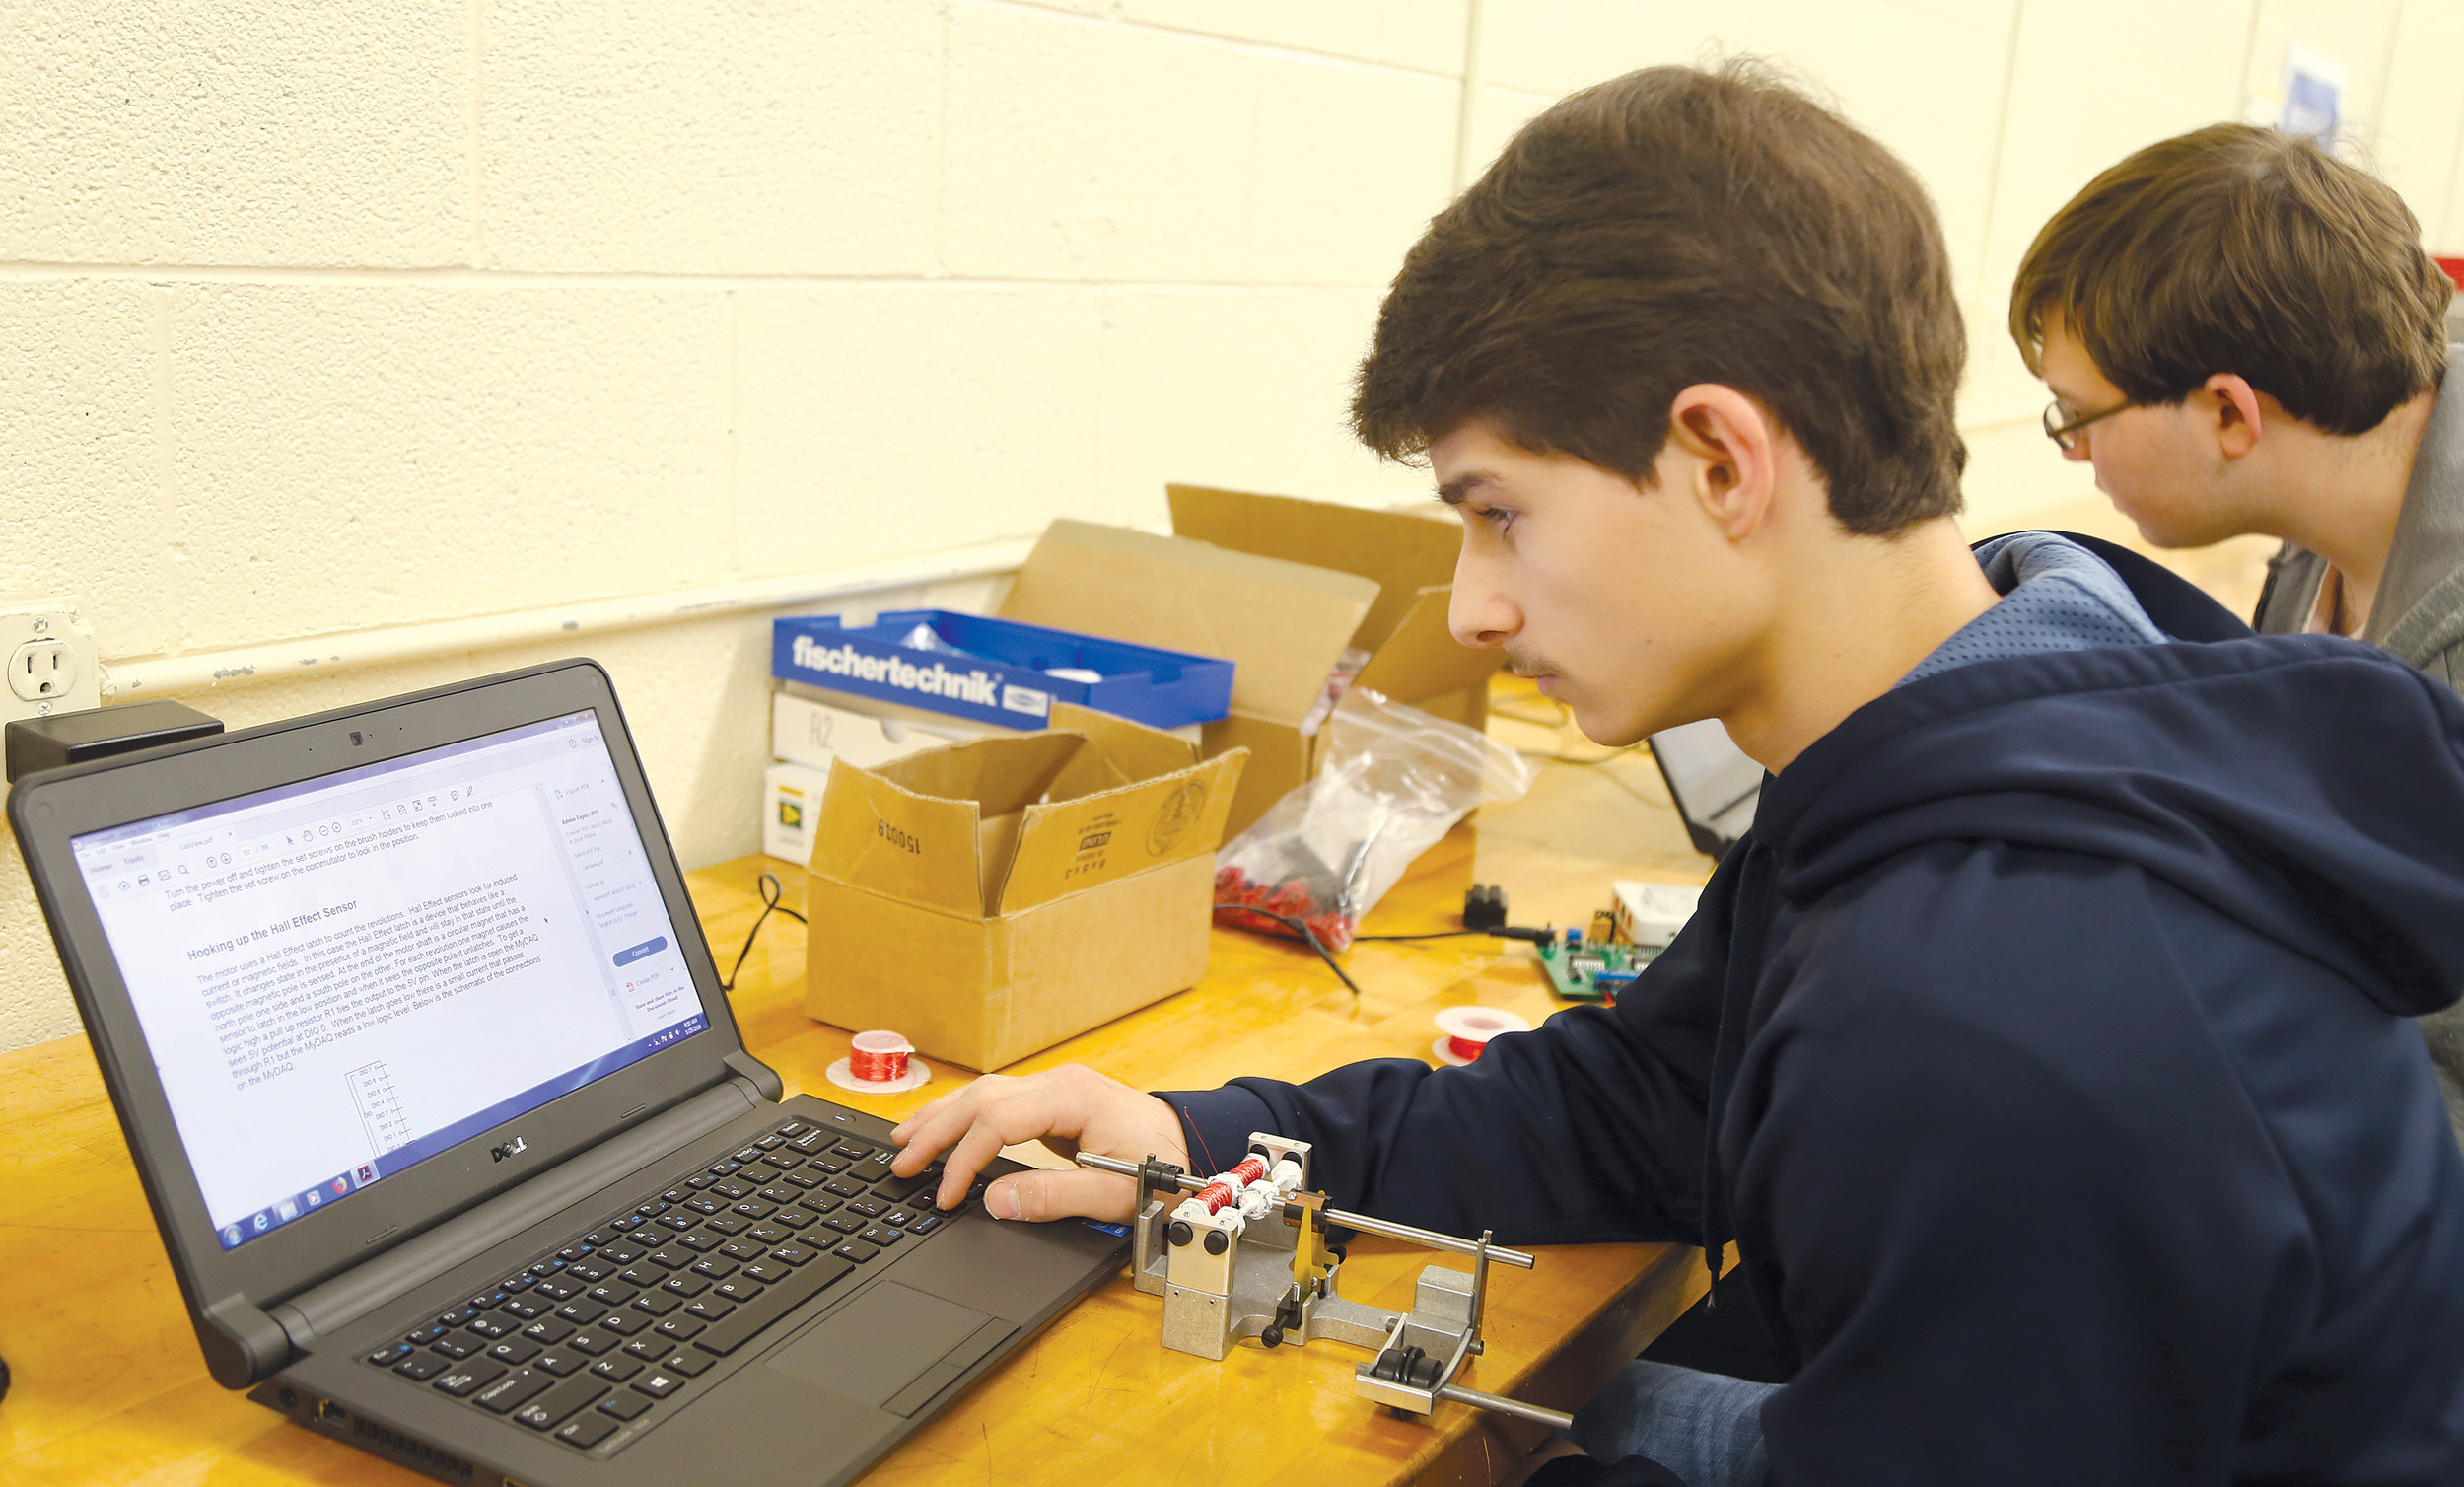 Sumter High School junior Blake Parnell reads instructions from a laptop on motor construction on Thursday at Sumter Career and Technology Center.